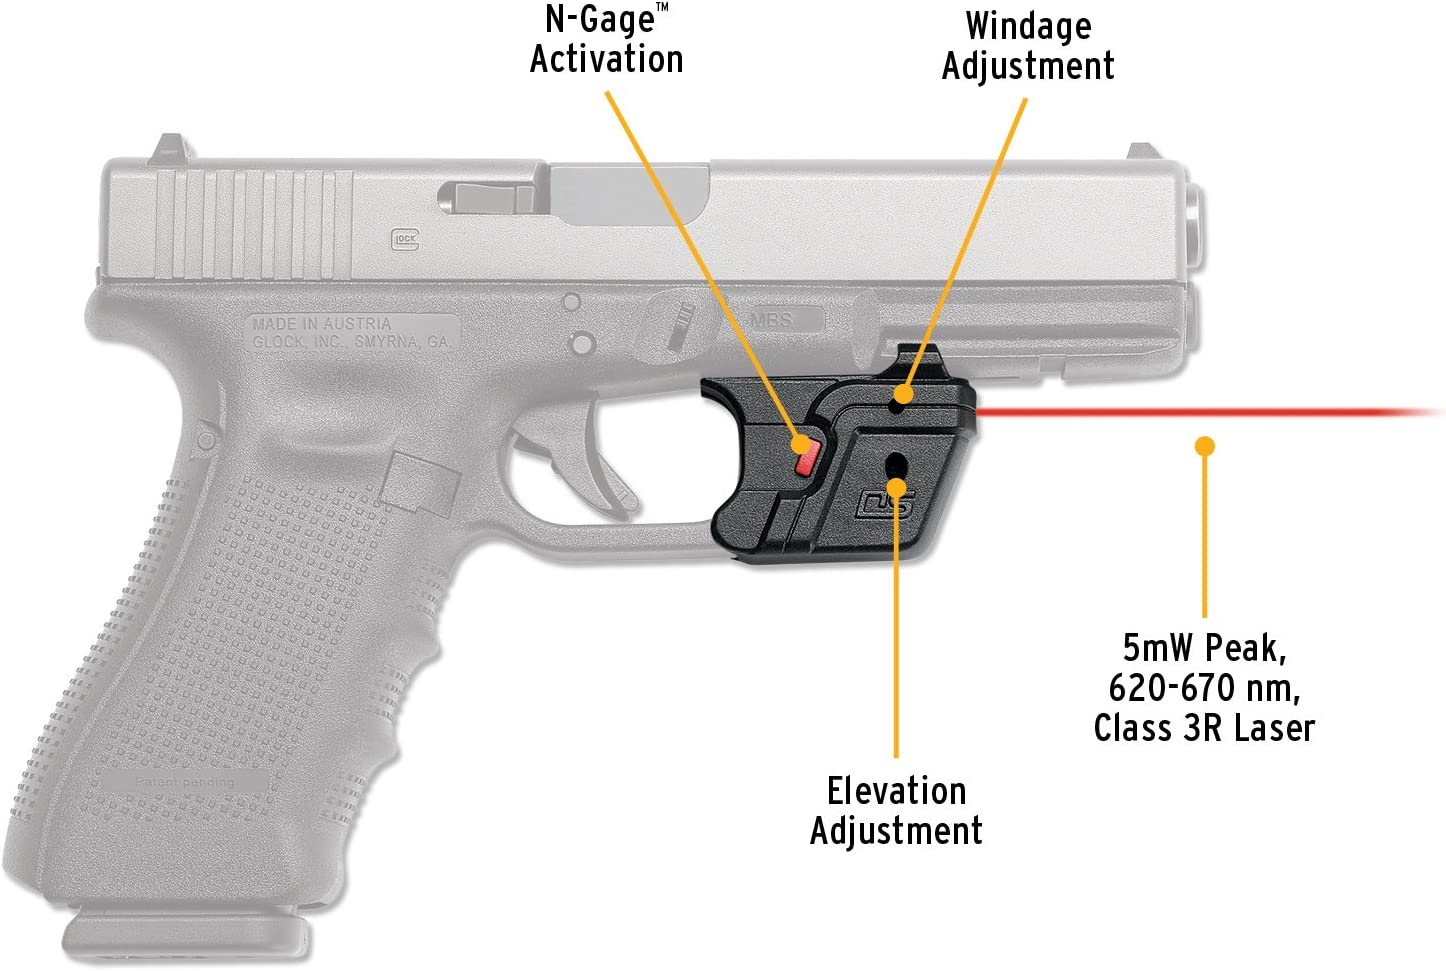 Universal Compact Red Laser Sight With Trigger Guard Mount for Pistol Rifle